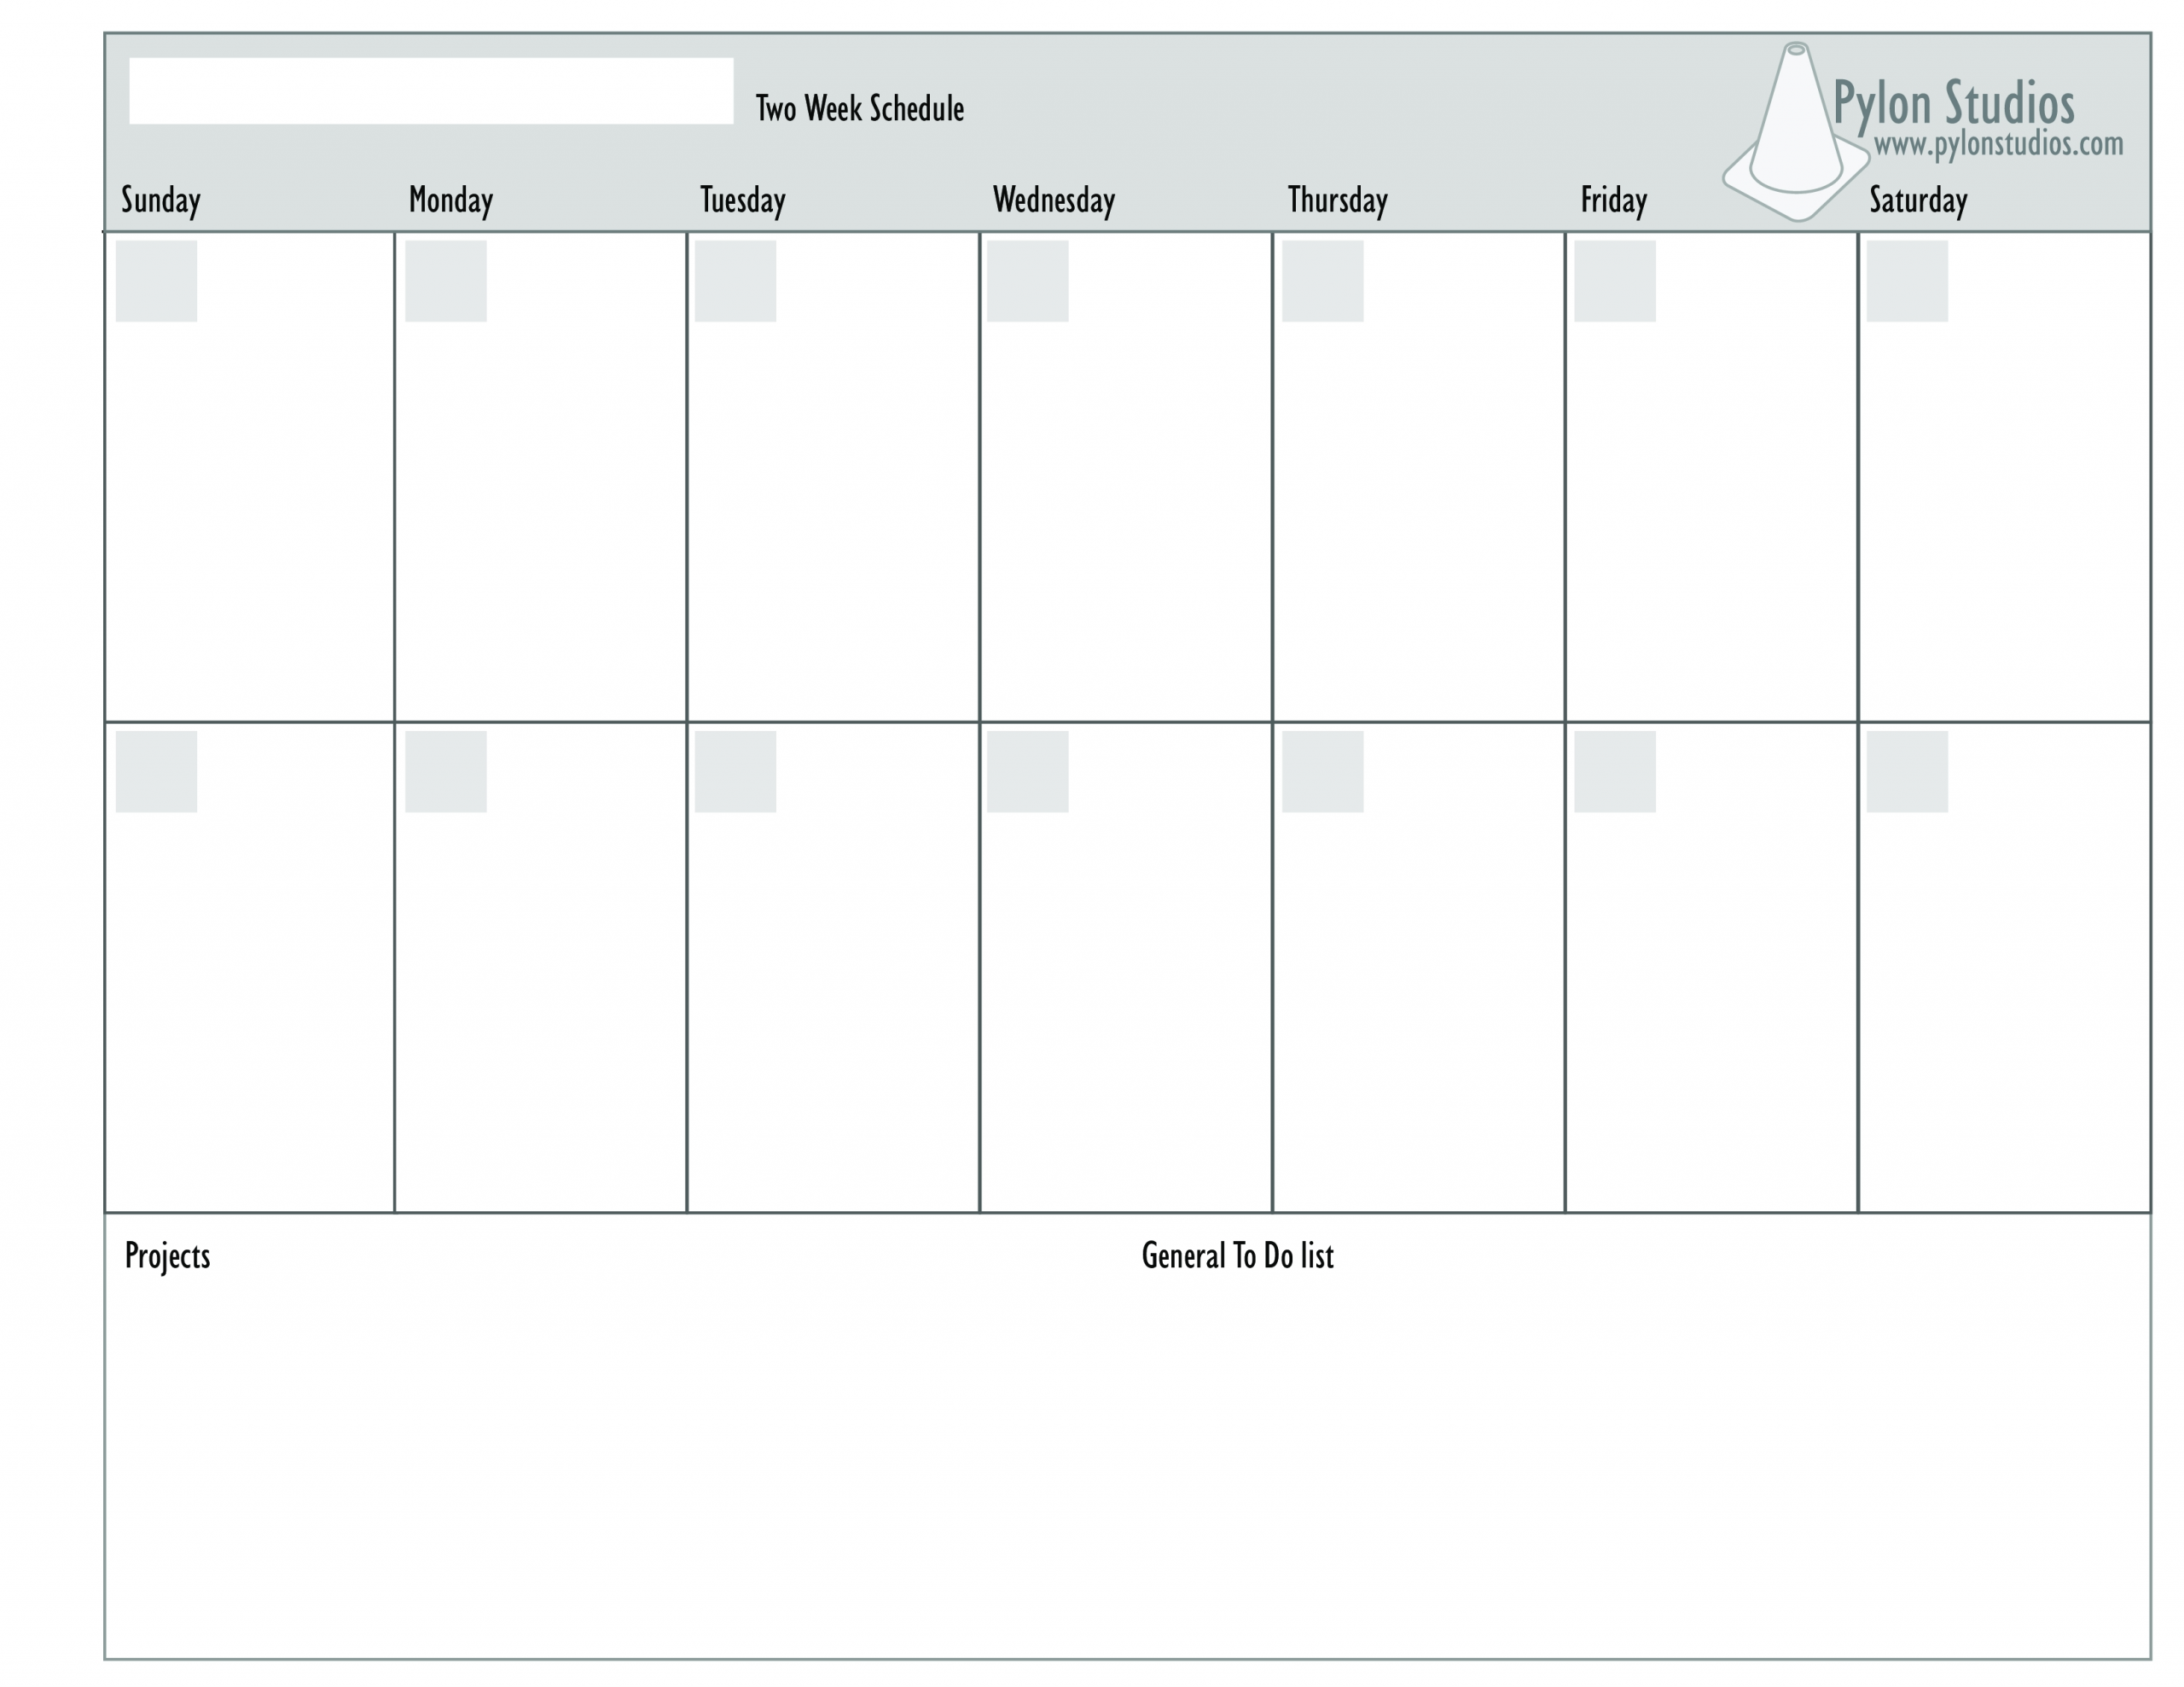 2 Week Calendar How To Create A 2 Week Calendar? Download